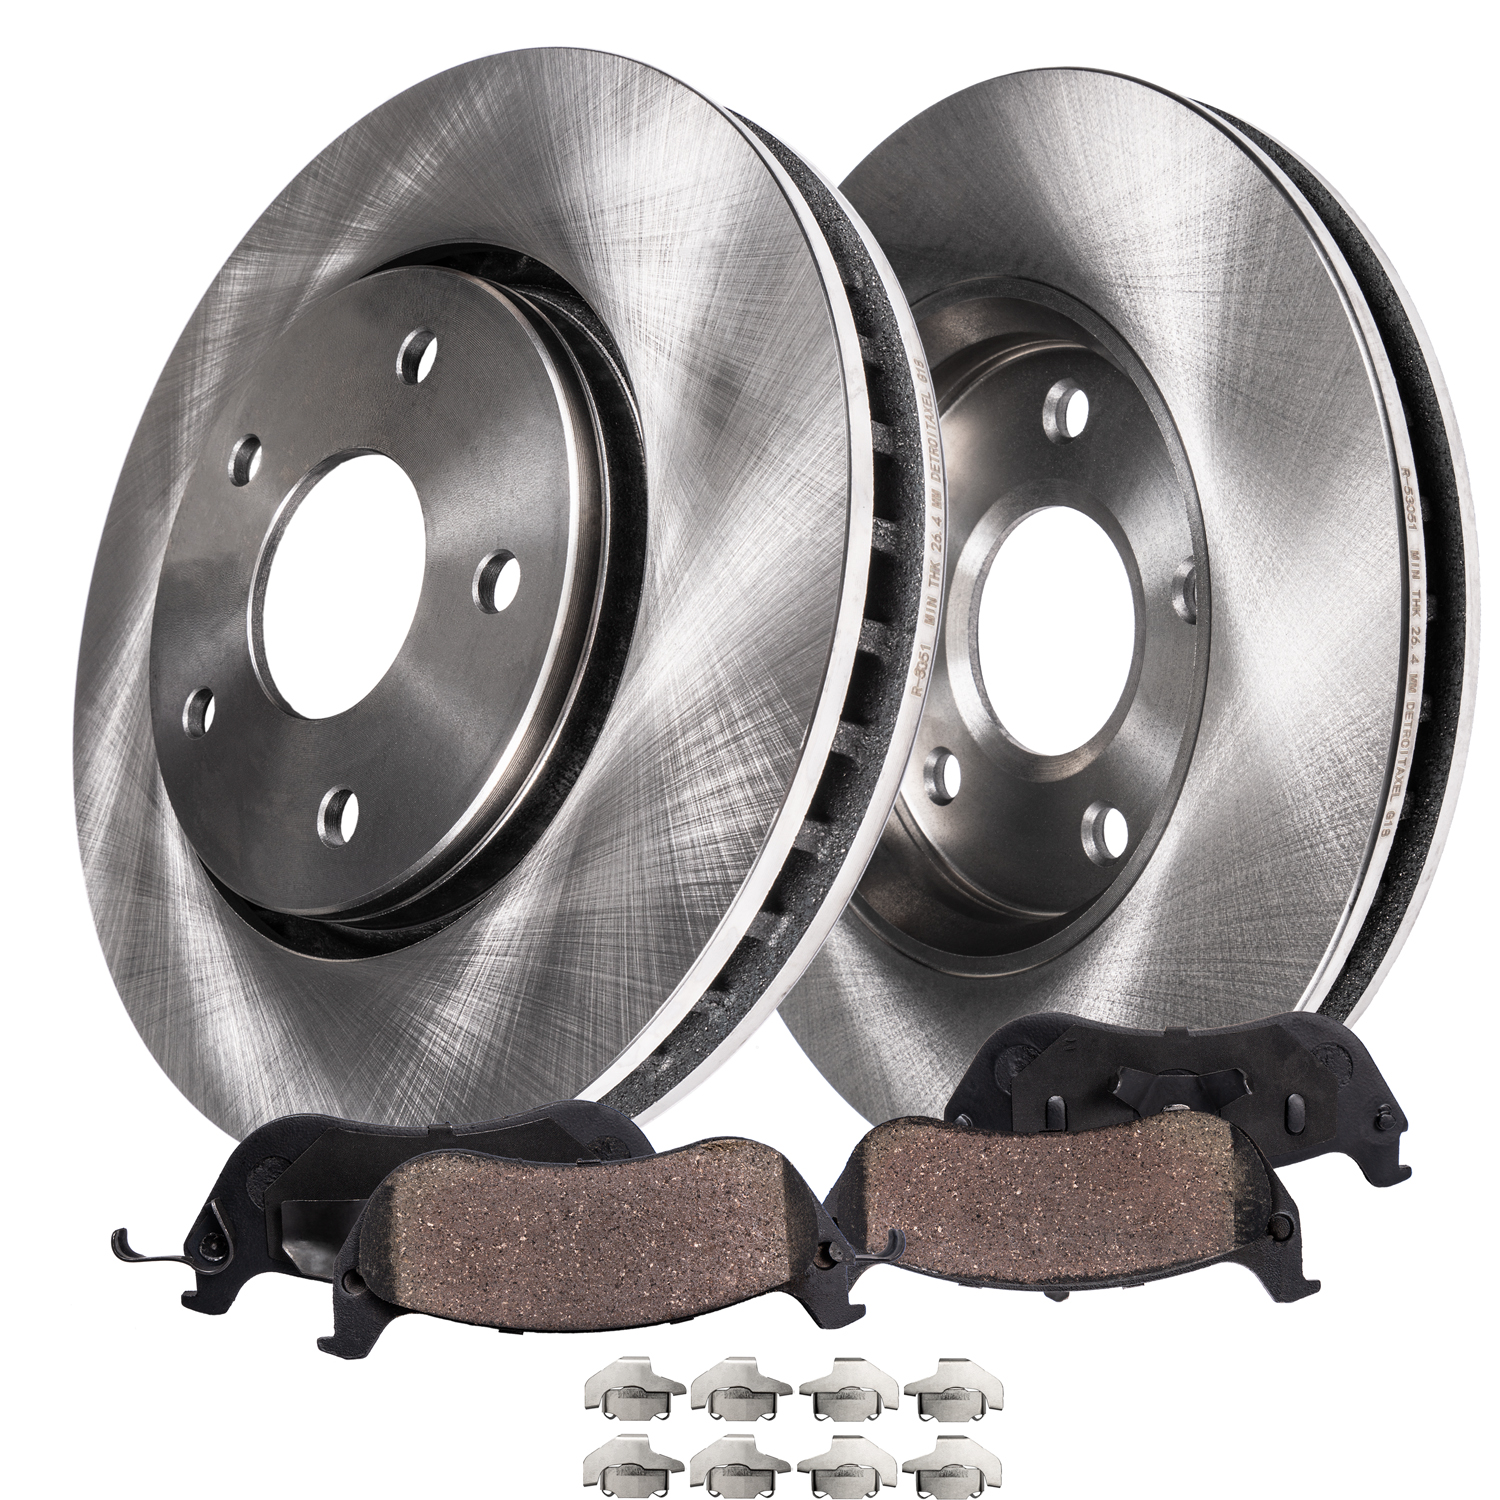 2011 2012 Fit Dodge Durango OE Replacement Rotors w//Ceramic Pads F+R See Desc.